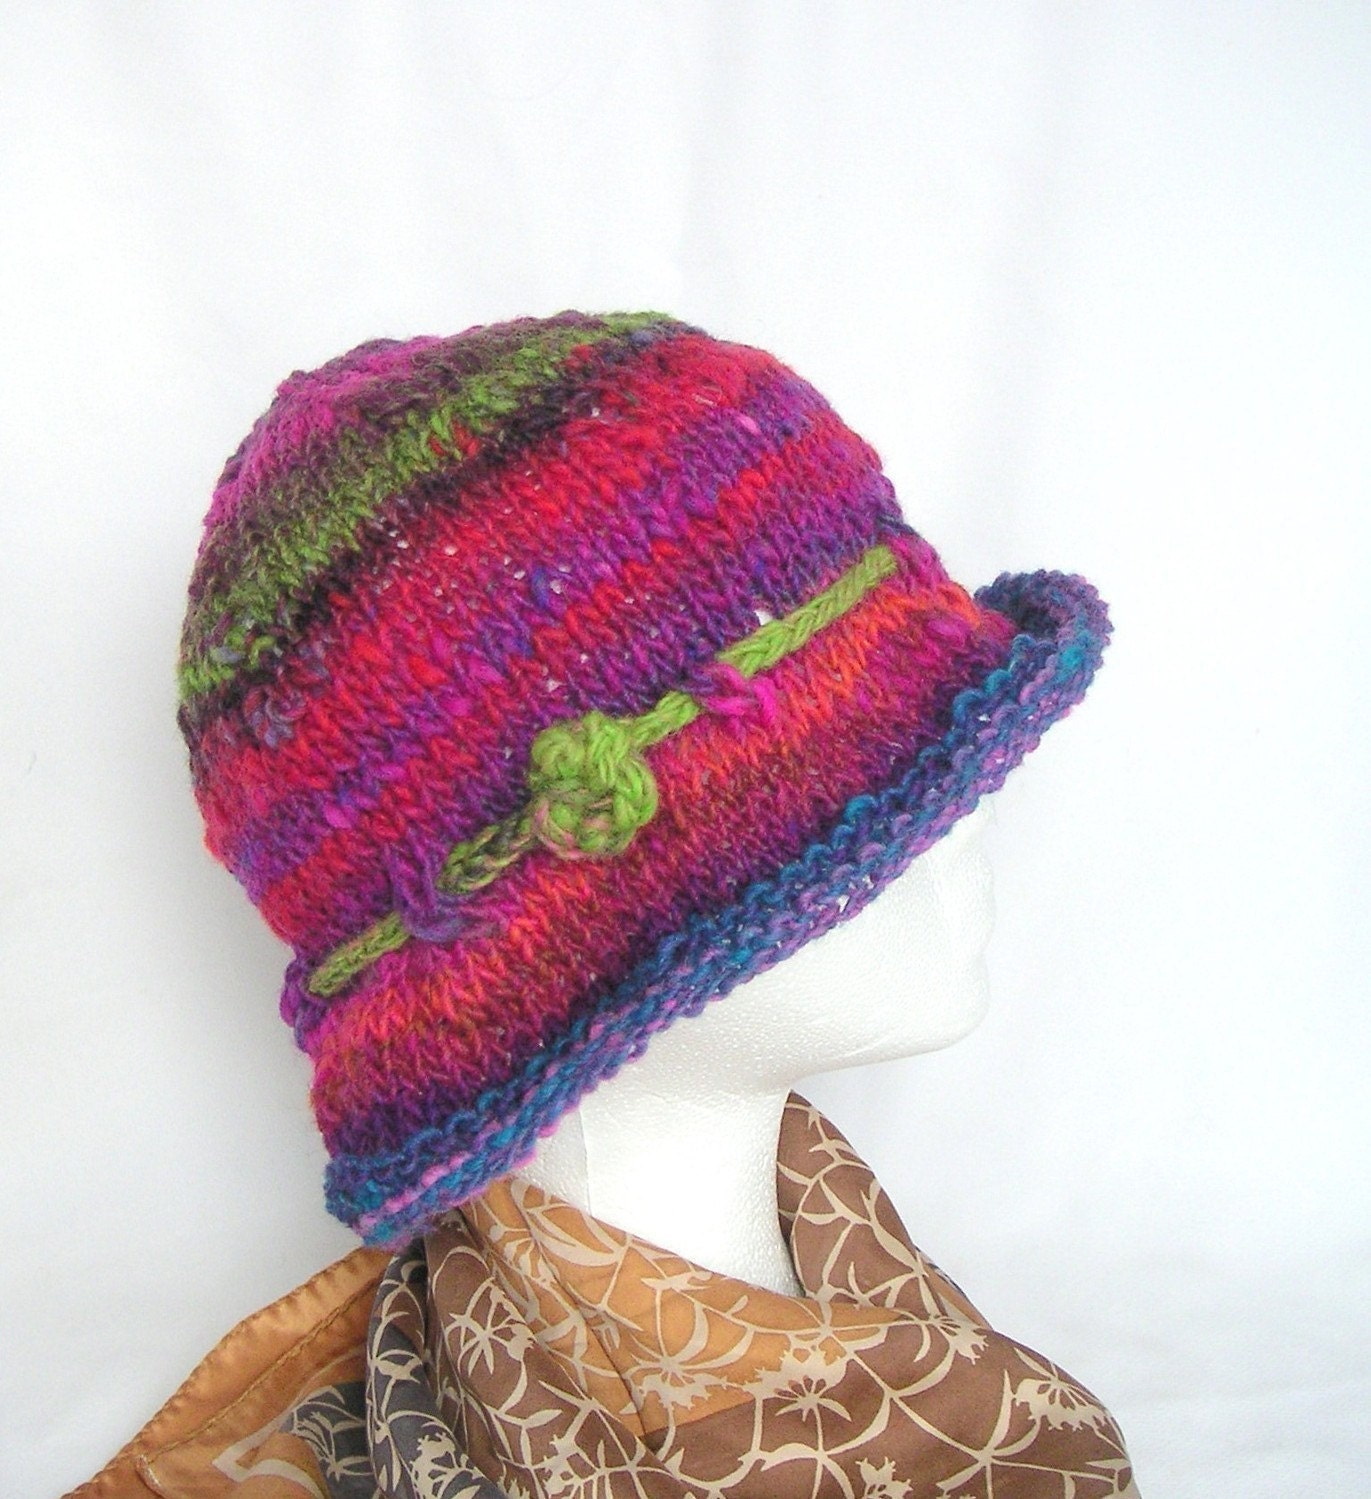 Easy Knitting Patterns For Hats | Free Patterns